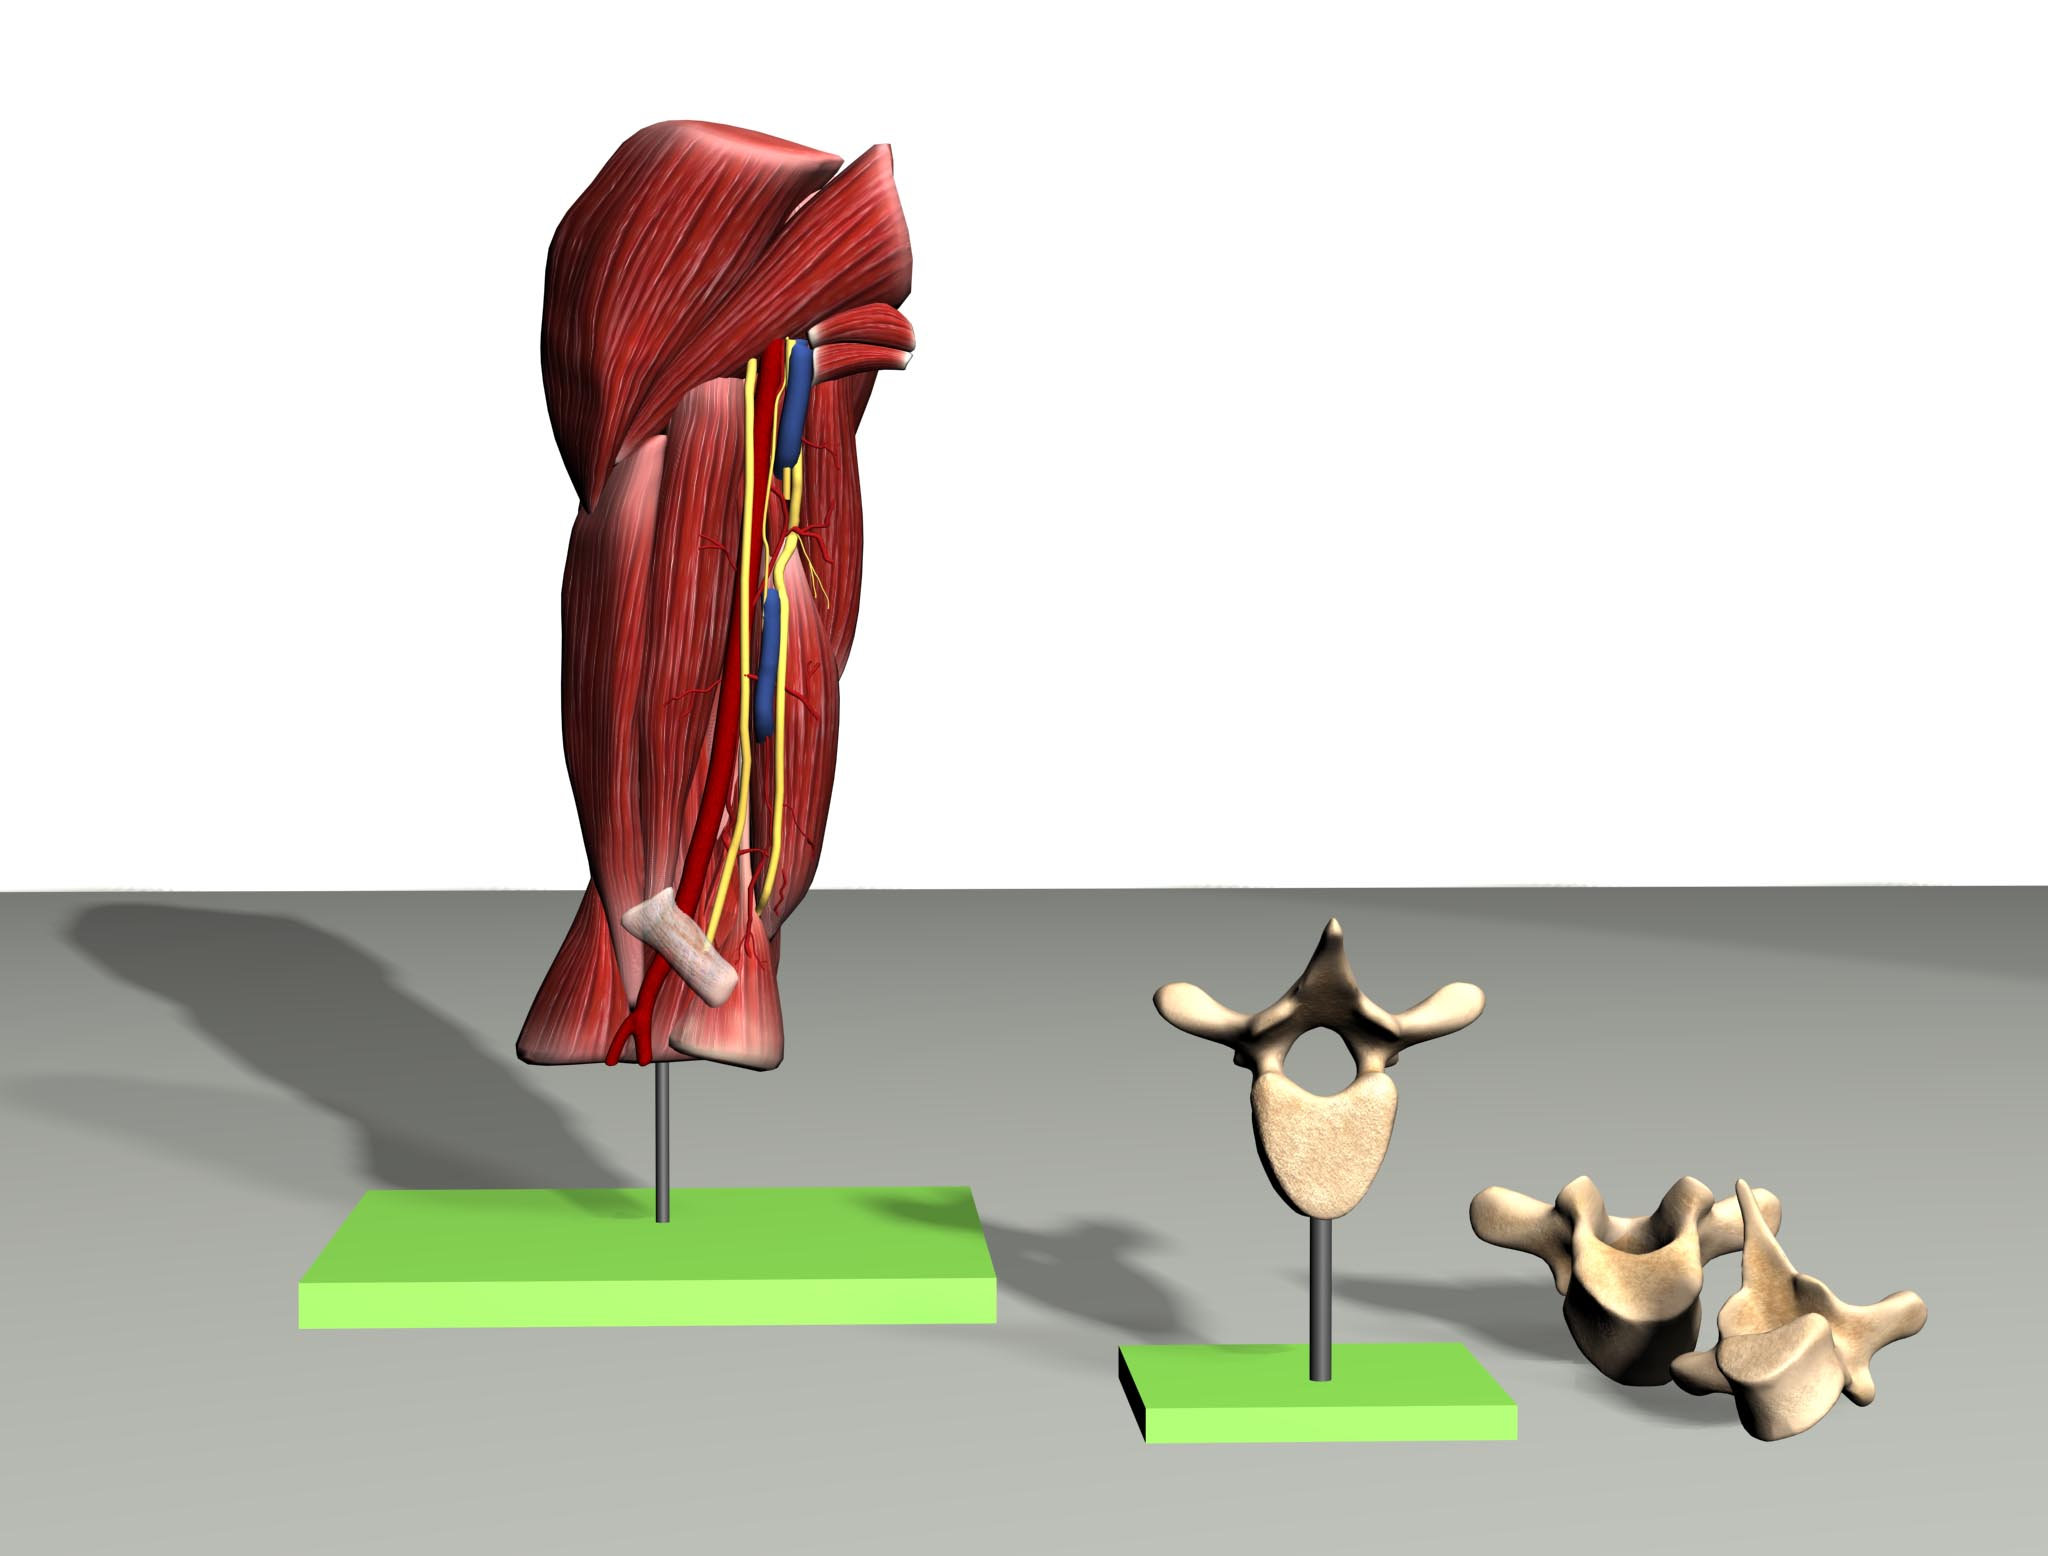 3D Model Upper Arm Muscles and Detail of Vertebrae